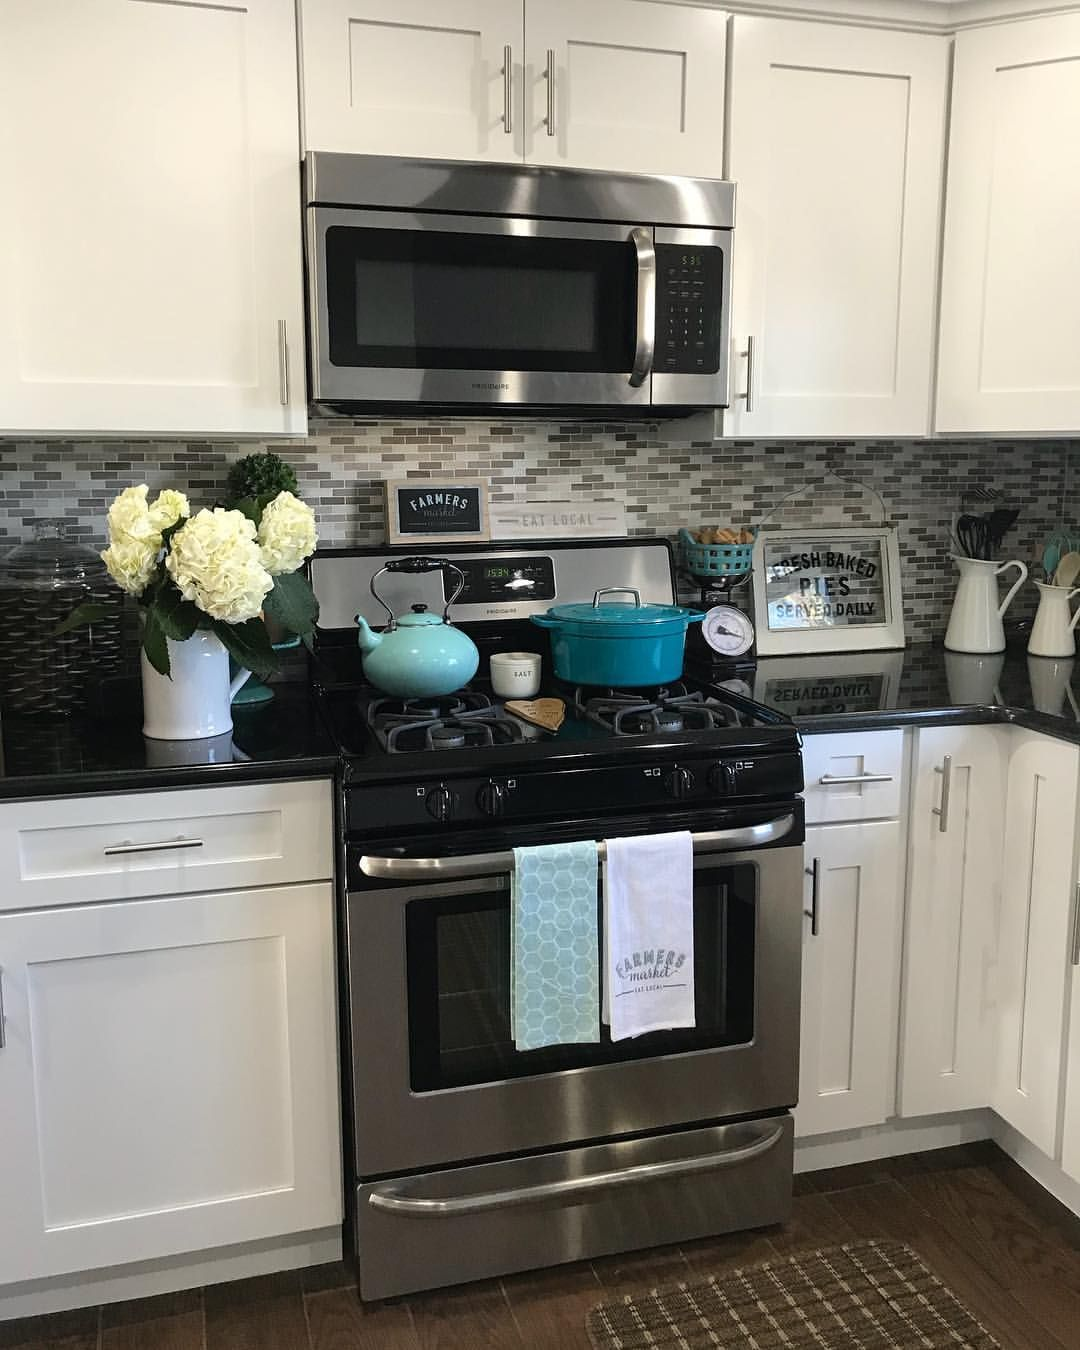 10x10 Kitchen Remodel: Food Shopping Clean Kitchen Fresh Flowers Sunny Sunday I